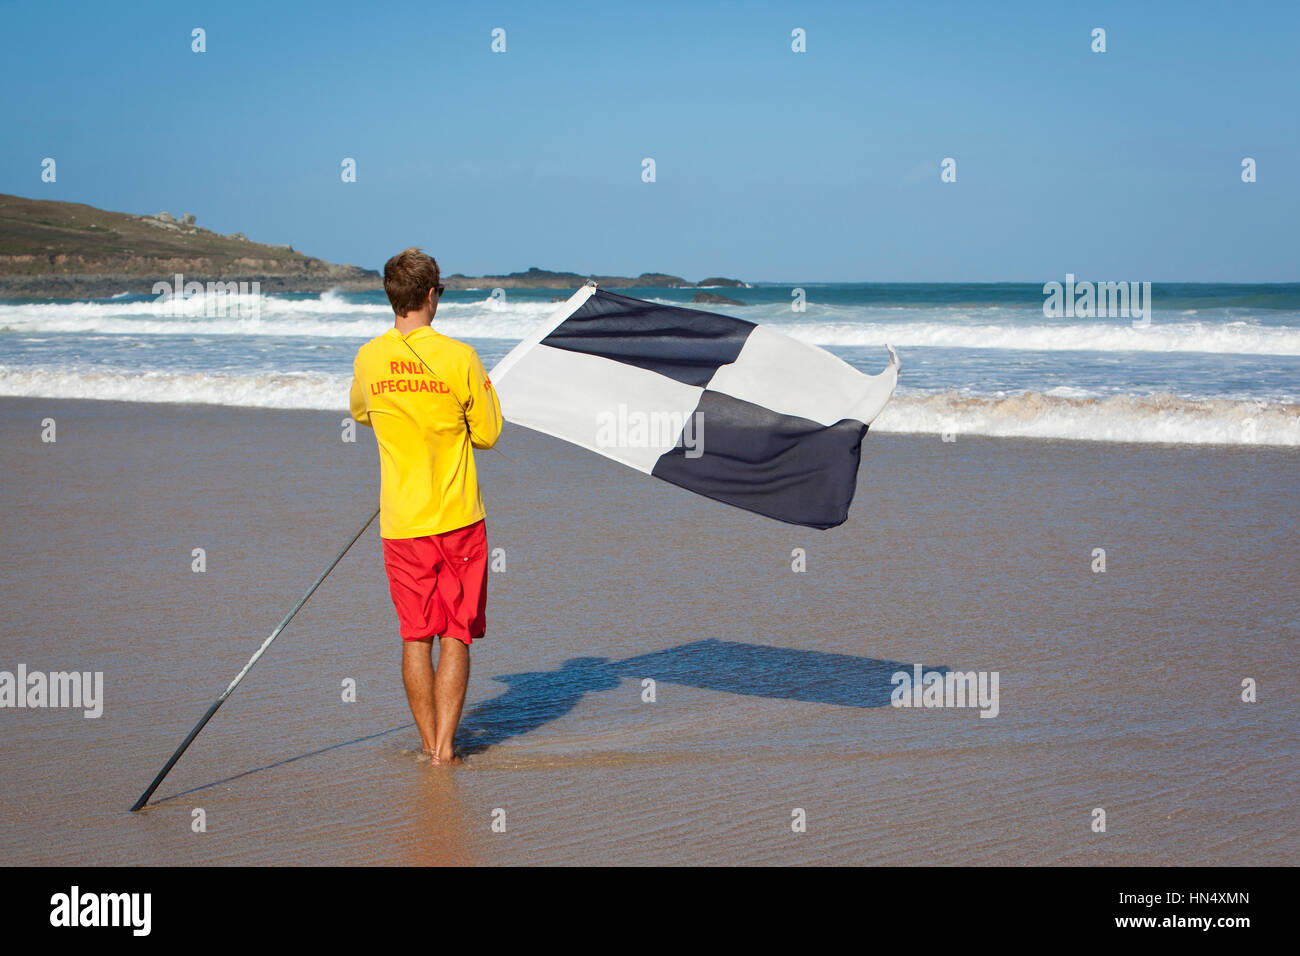 St Ives, United Kingdom - September 11, 2011: A lifeguard from the Royal National Lifeboat Institution (RNLI) stands - Stock Image